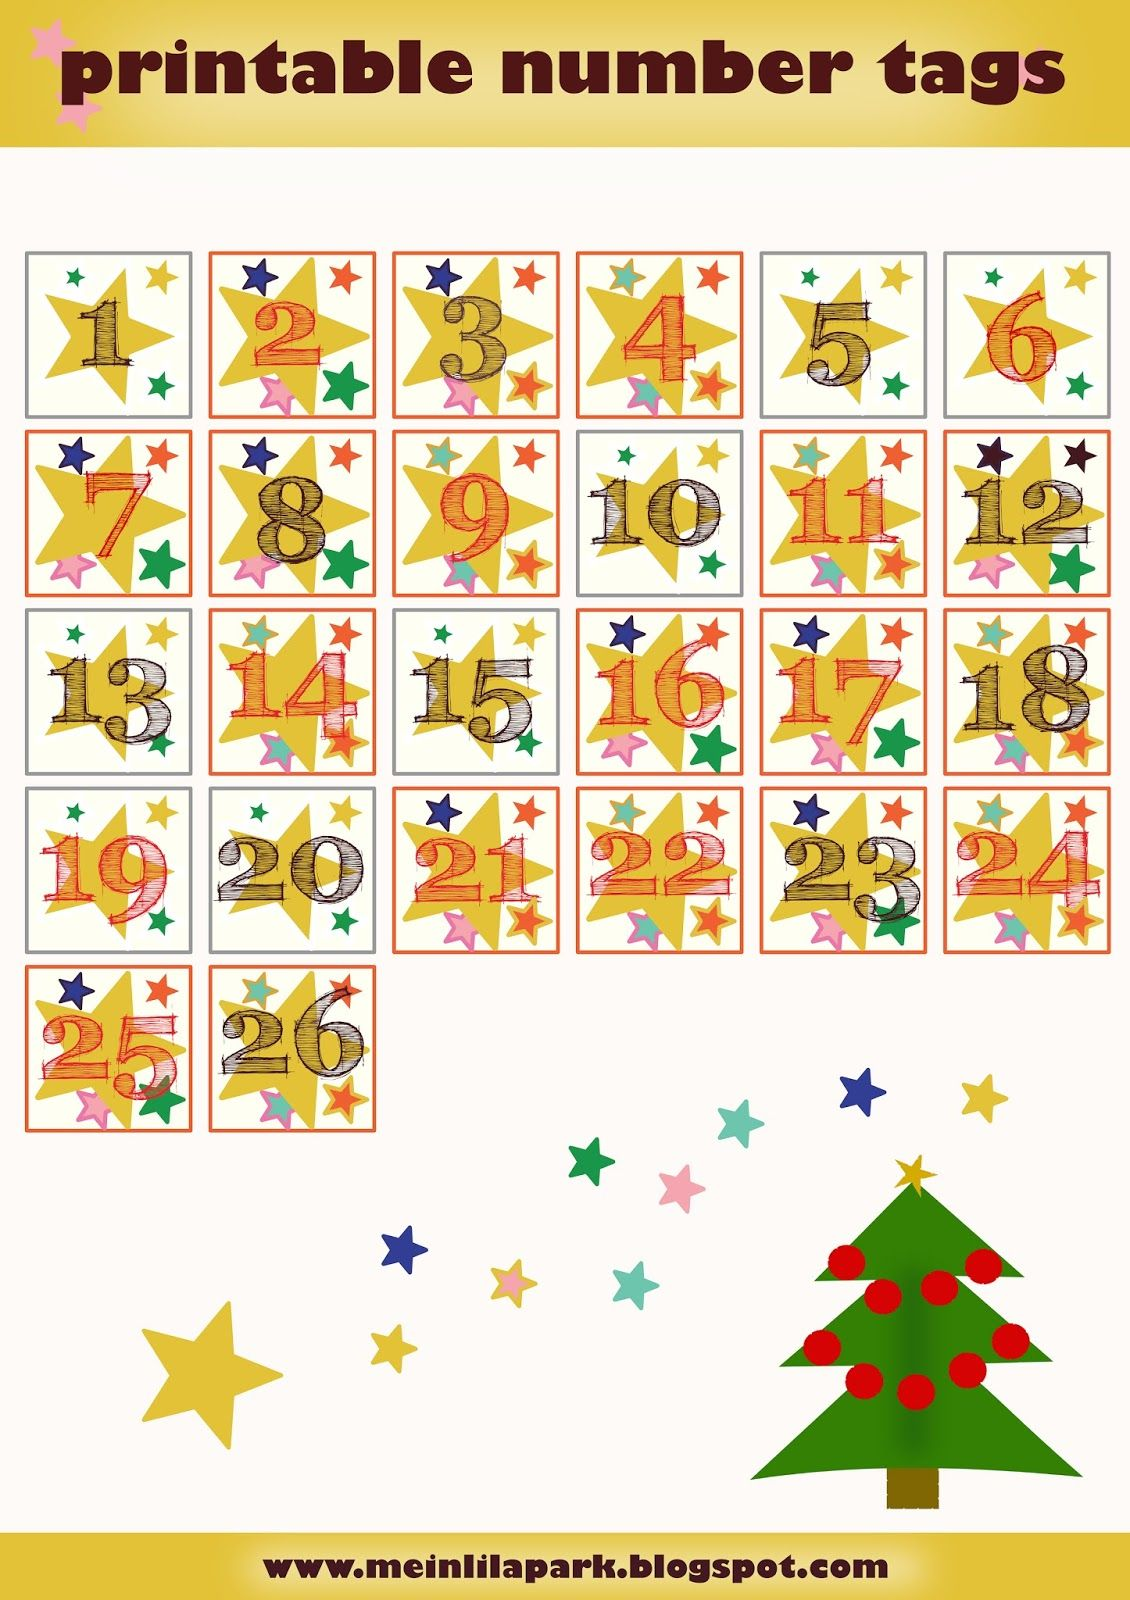 photograph relating to Advent Calendar Printable identified as Absolutely free printable introduction calendar figures - Zahlen für